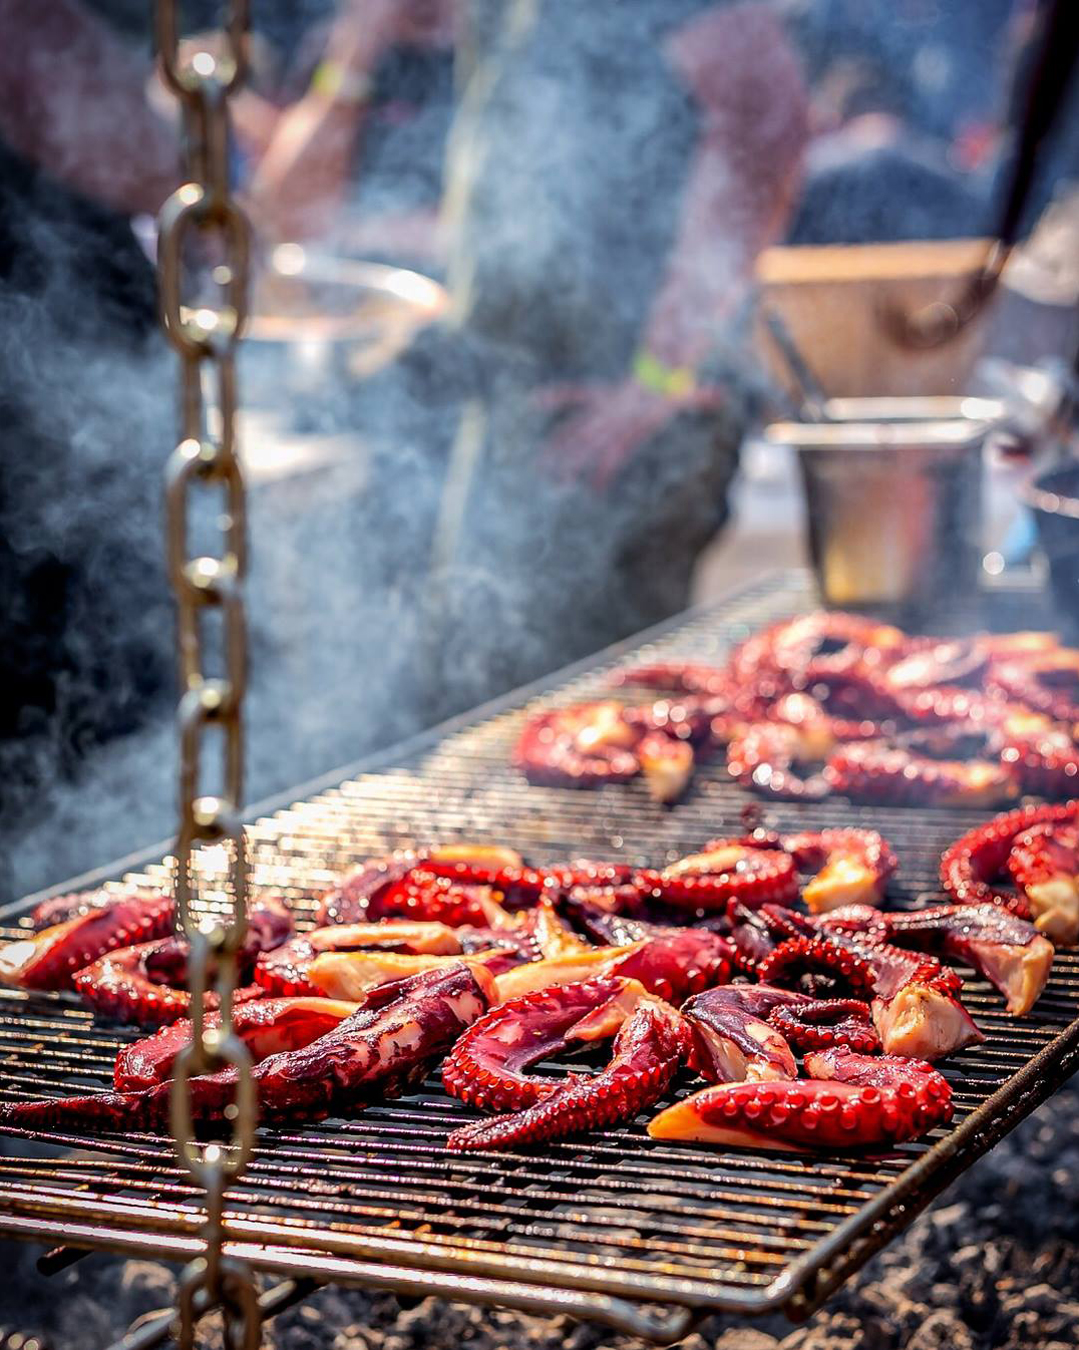 calamari being cooked over grill